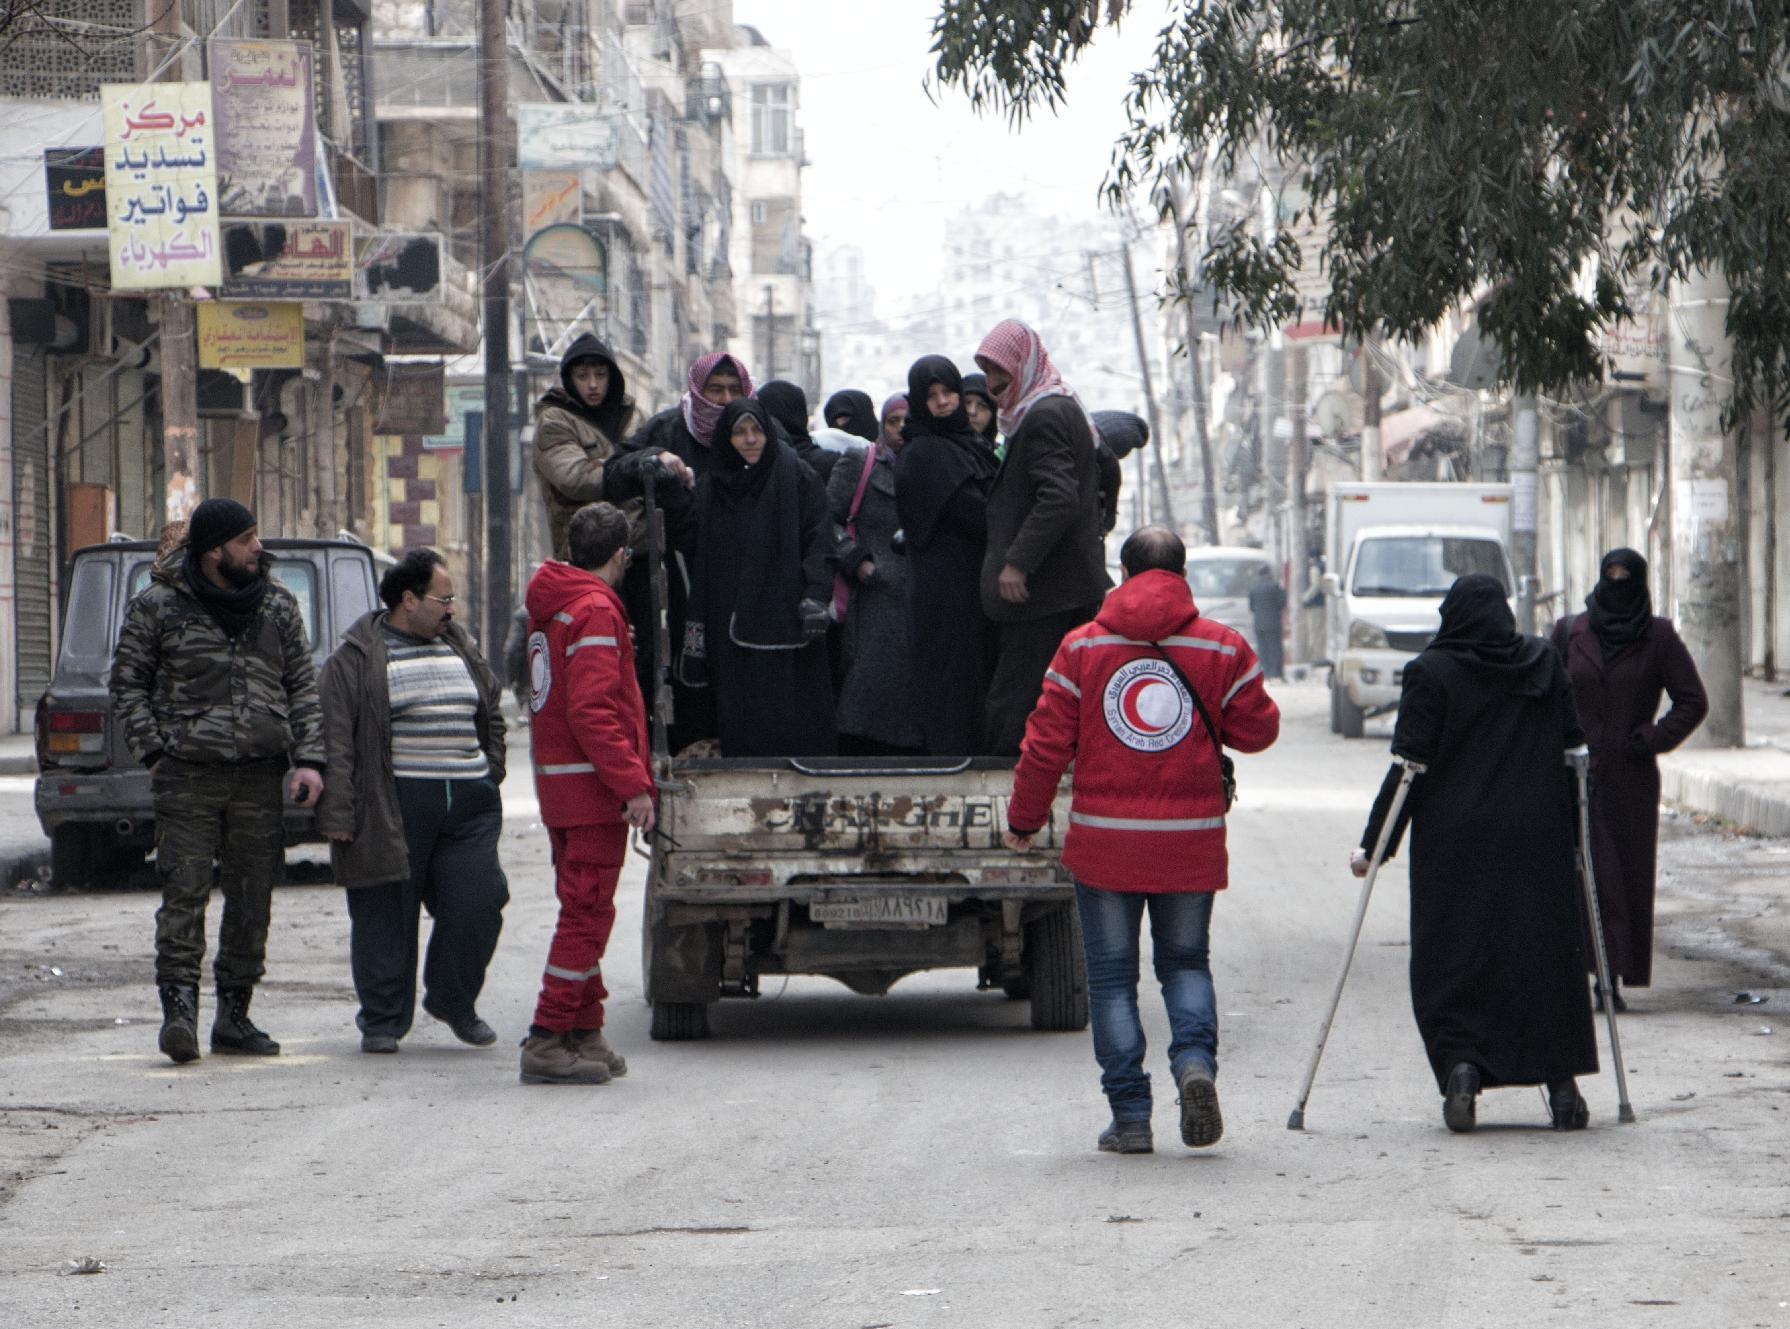 Members of the Syrian Red Crescent transport Syrians from a rebel-controlled area of Aleppo to the regime held area of the city on January 28, 2015 (AFP Photo/Karam Al-Masri)